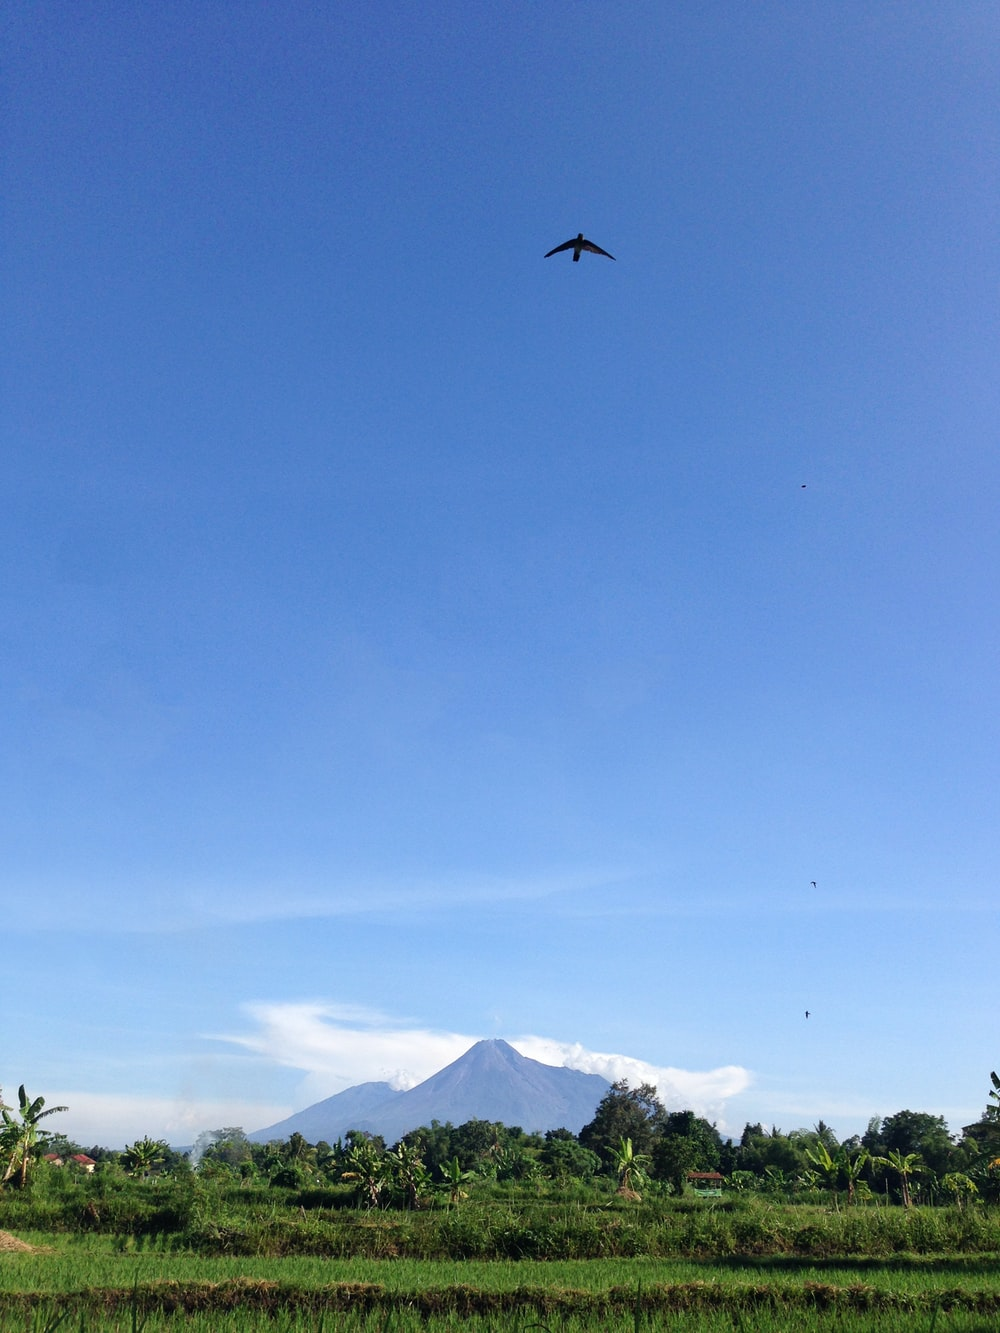 bird flying over green trees and mountain during daytime